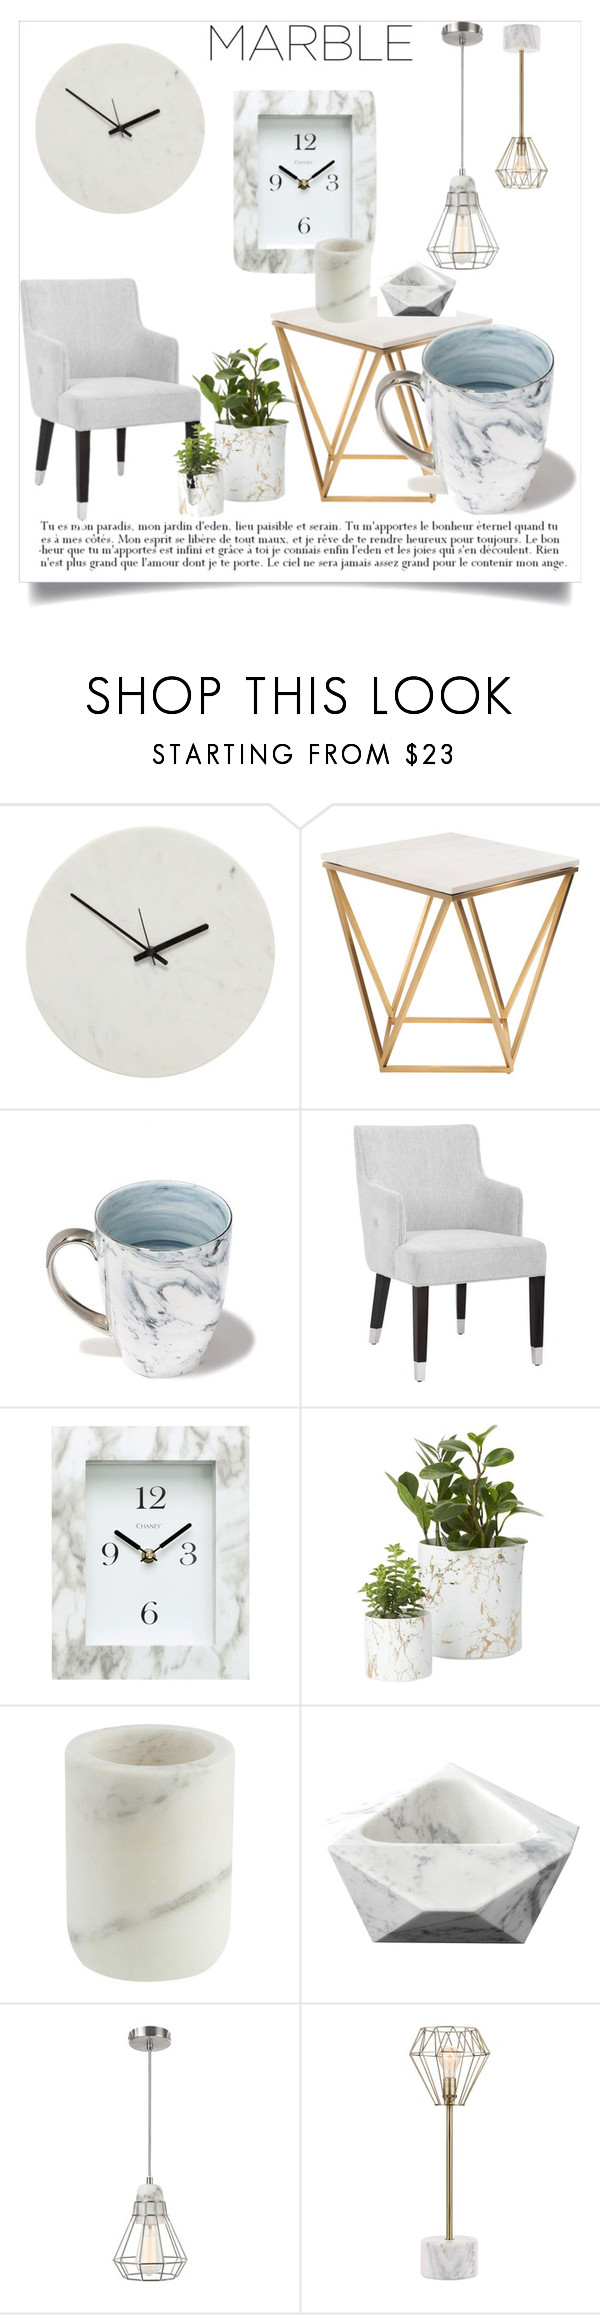 """""""Marble"""" by yourlittlemarie ❤ liked on Polyvore featuring interior, interiors, interior design, home, home decor, interior decorating, Holly's House, Nuevo, Jordan Carlyle and Chaney"""